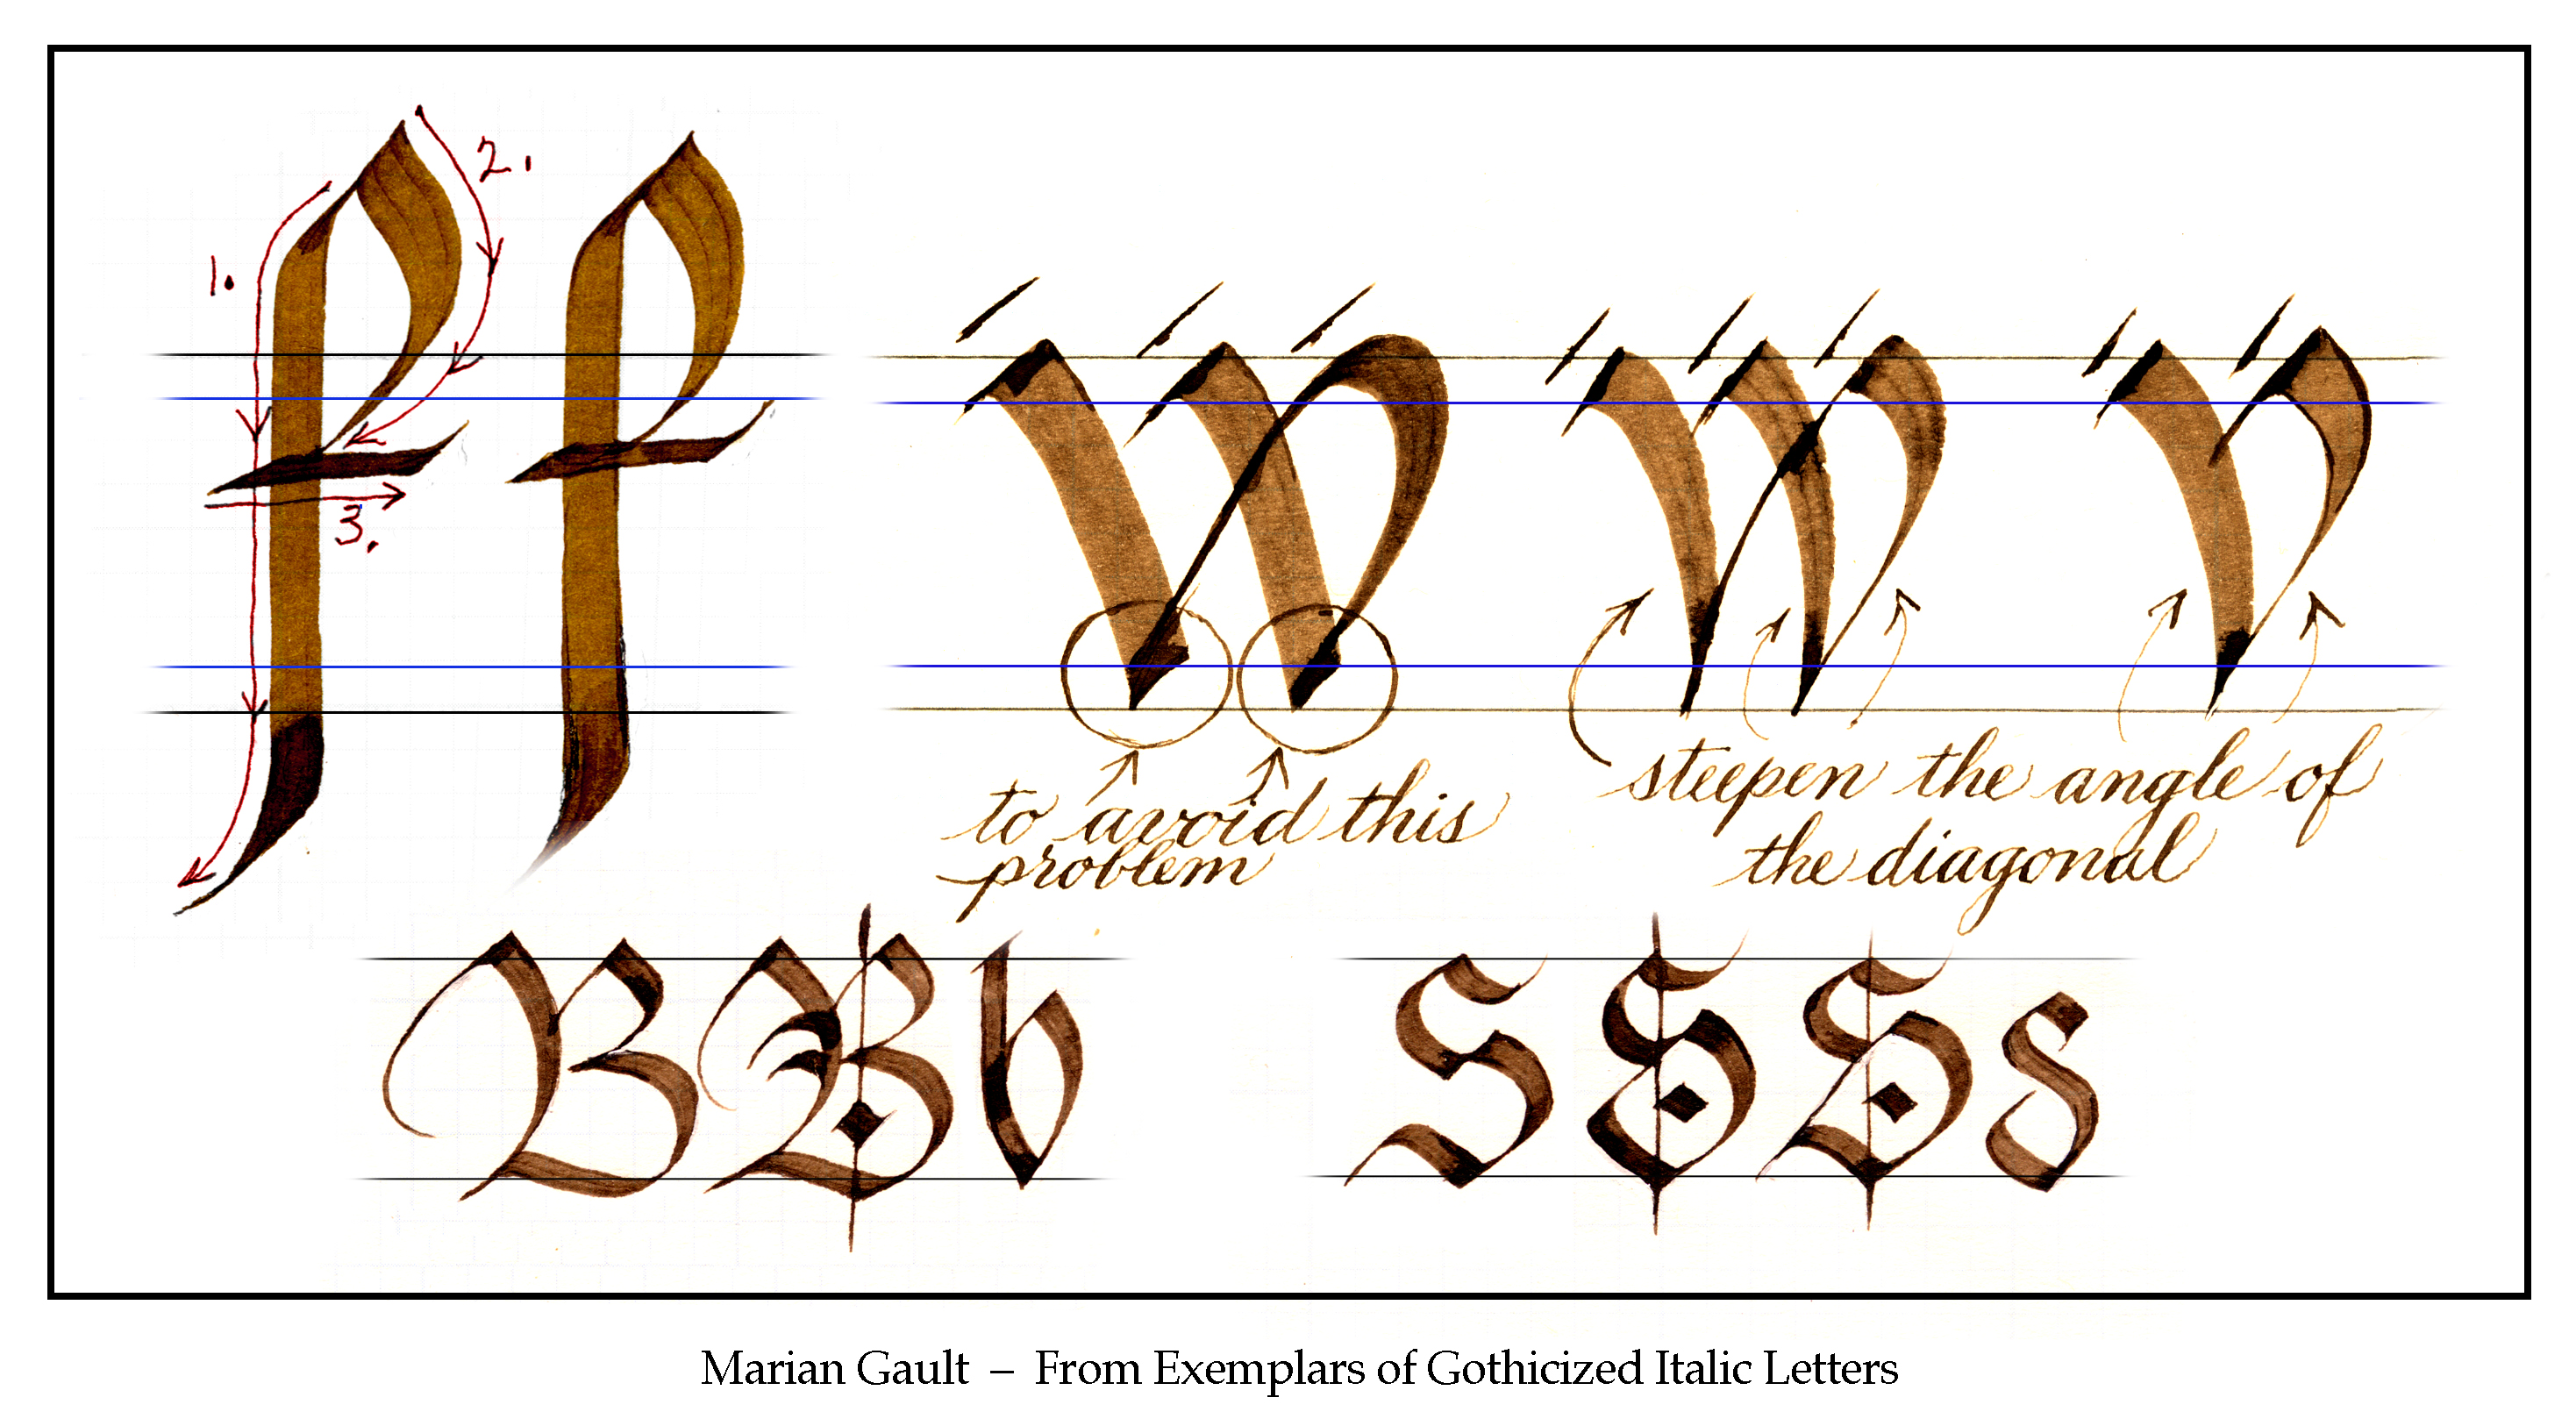 Calligraphy by Marian Gault